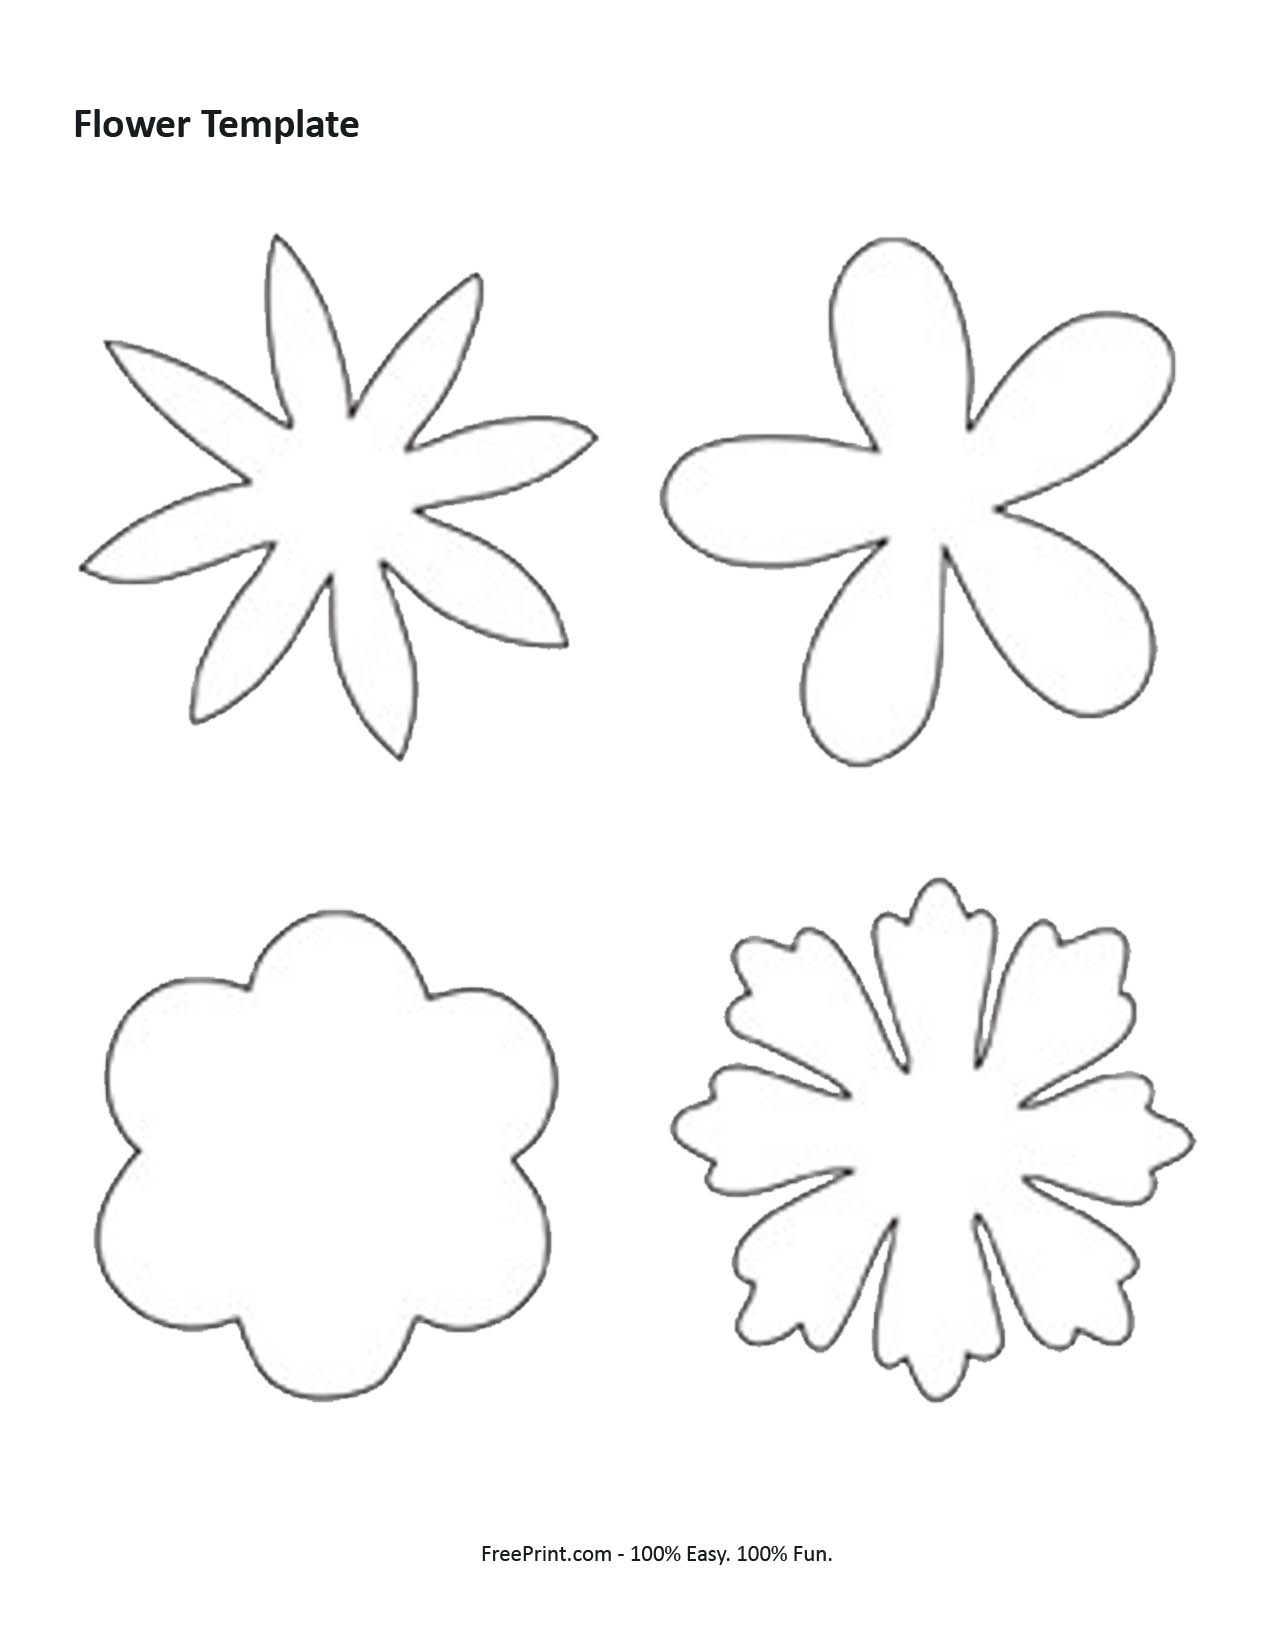 Felt Flower Template | Diy And Crafts | Flower Template, Felt - Free Printable Flower Template